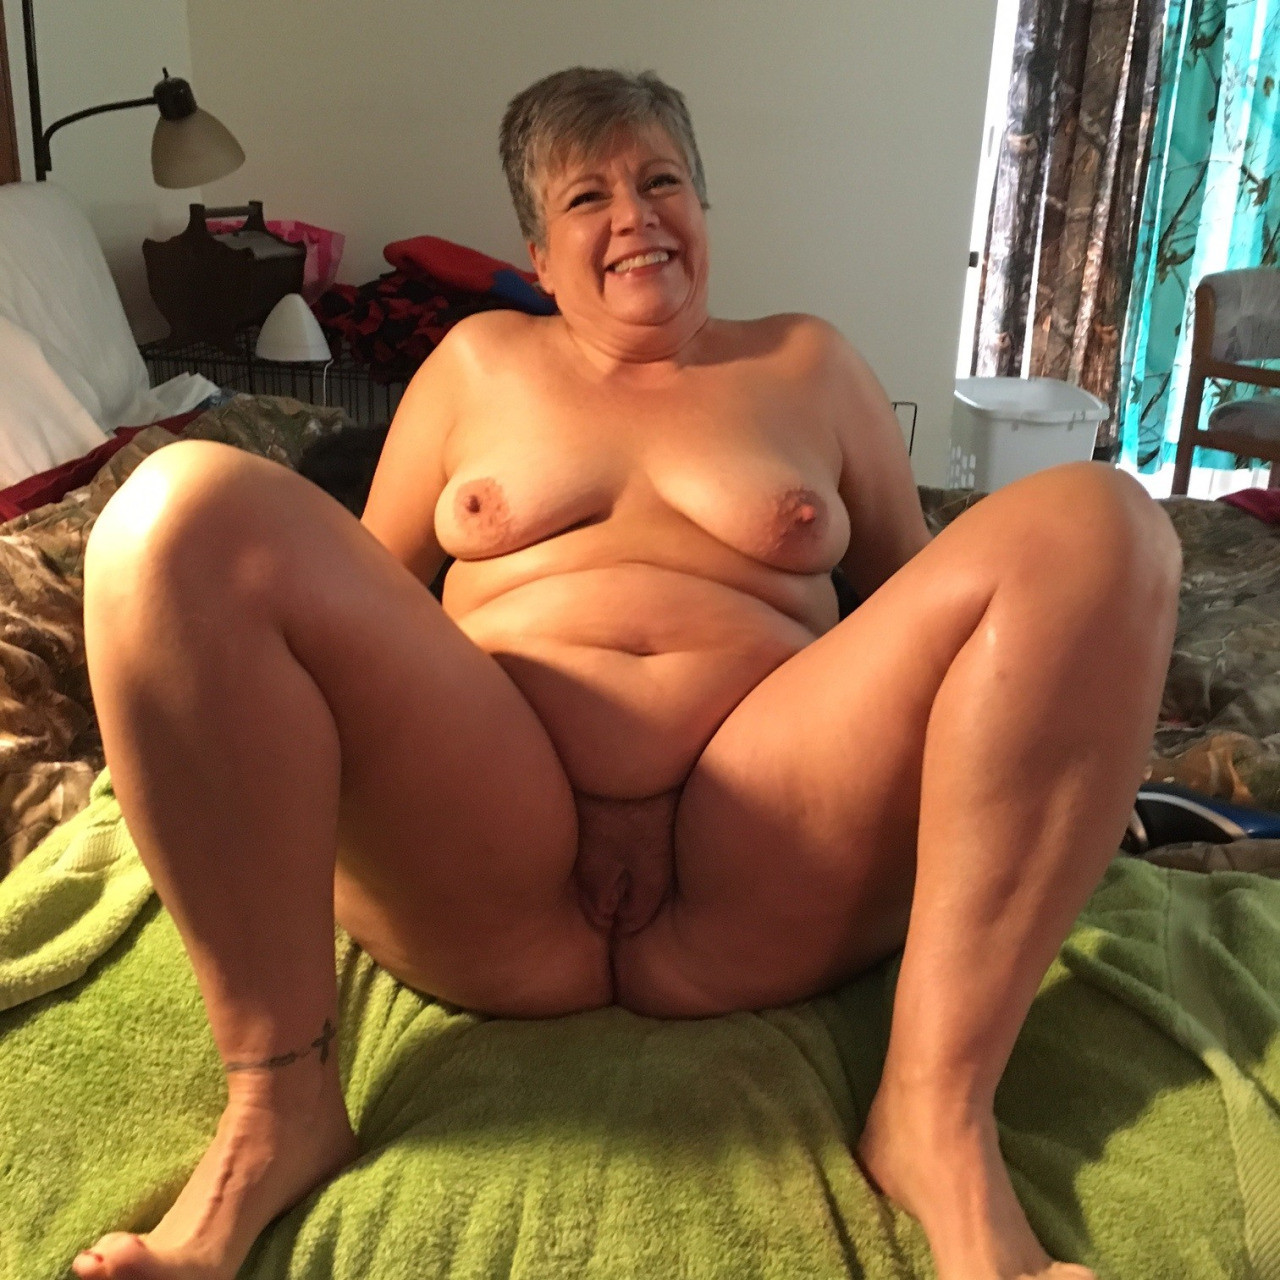 Vid just chubby vintage granny the